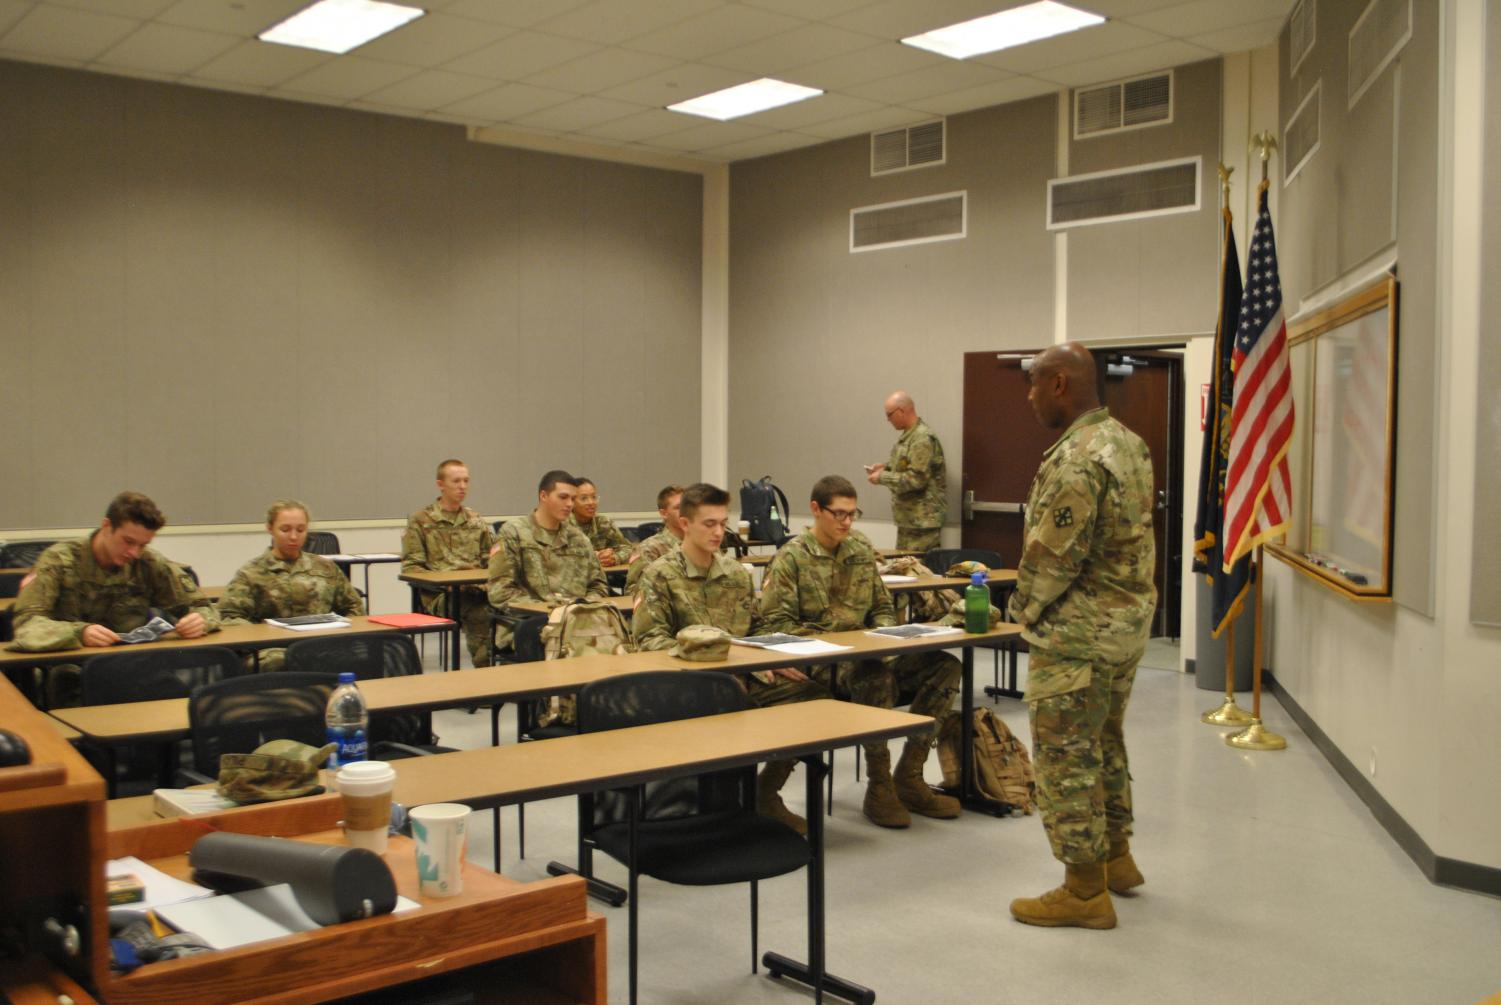 Major Bruce Jordan (right) instructs cadets in their one Pitt-Johnstown lecture, covering topics such as weapons systems and land navigation.